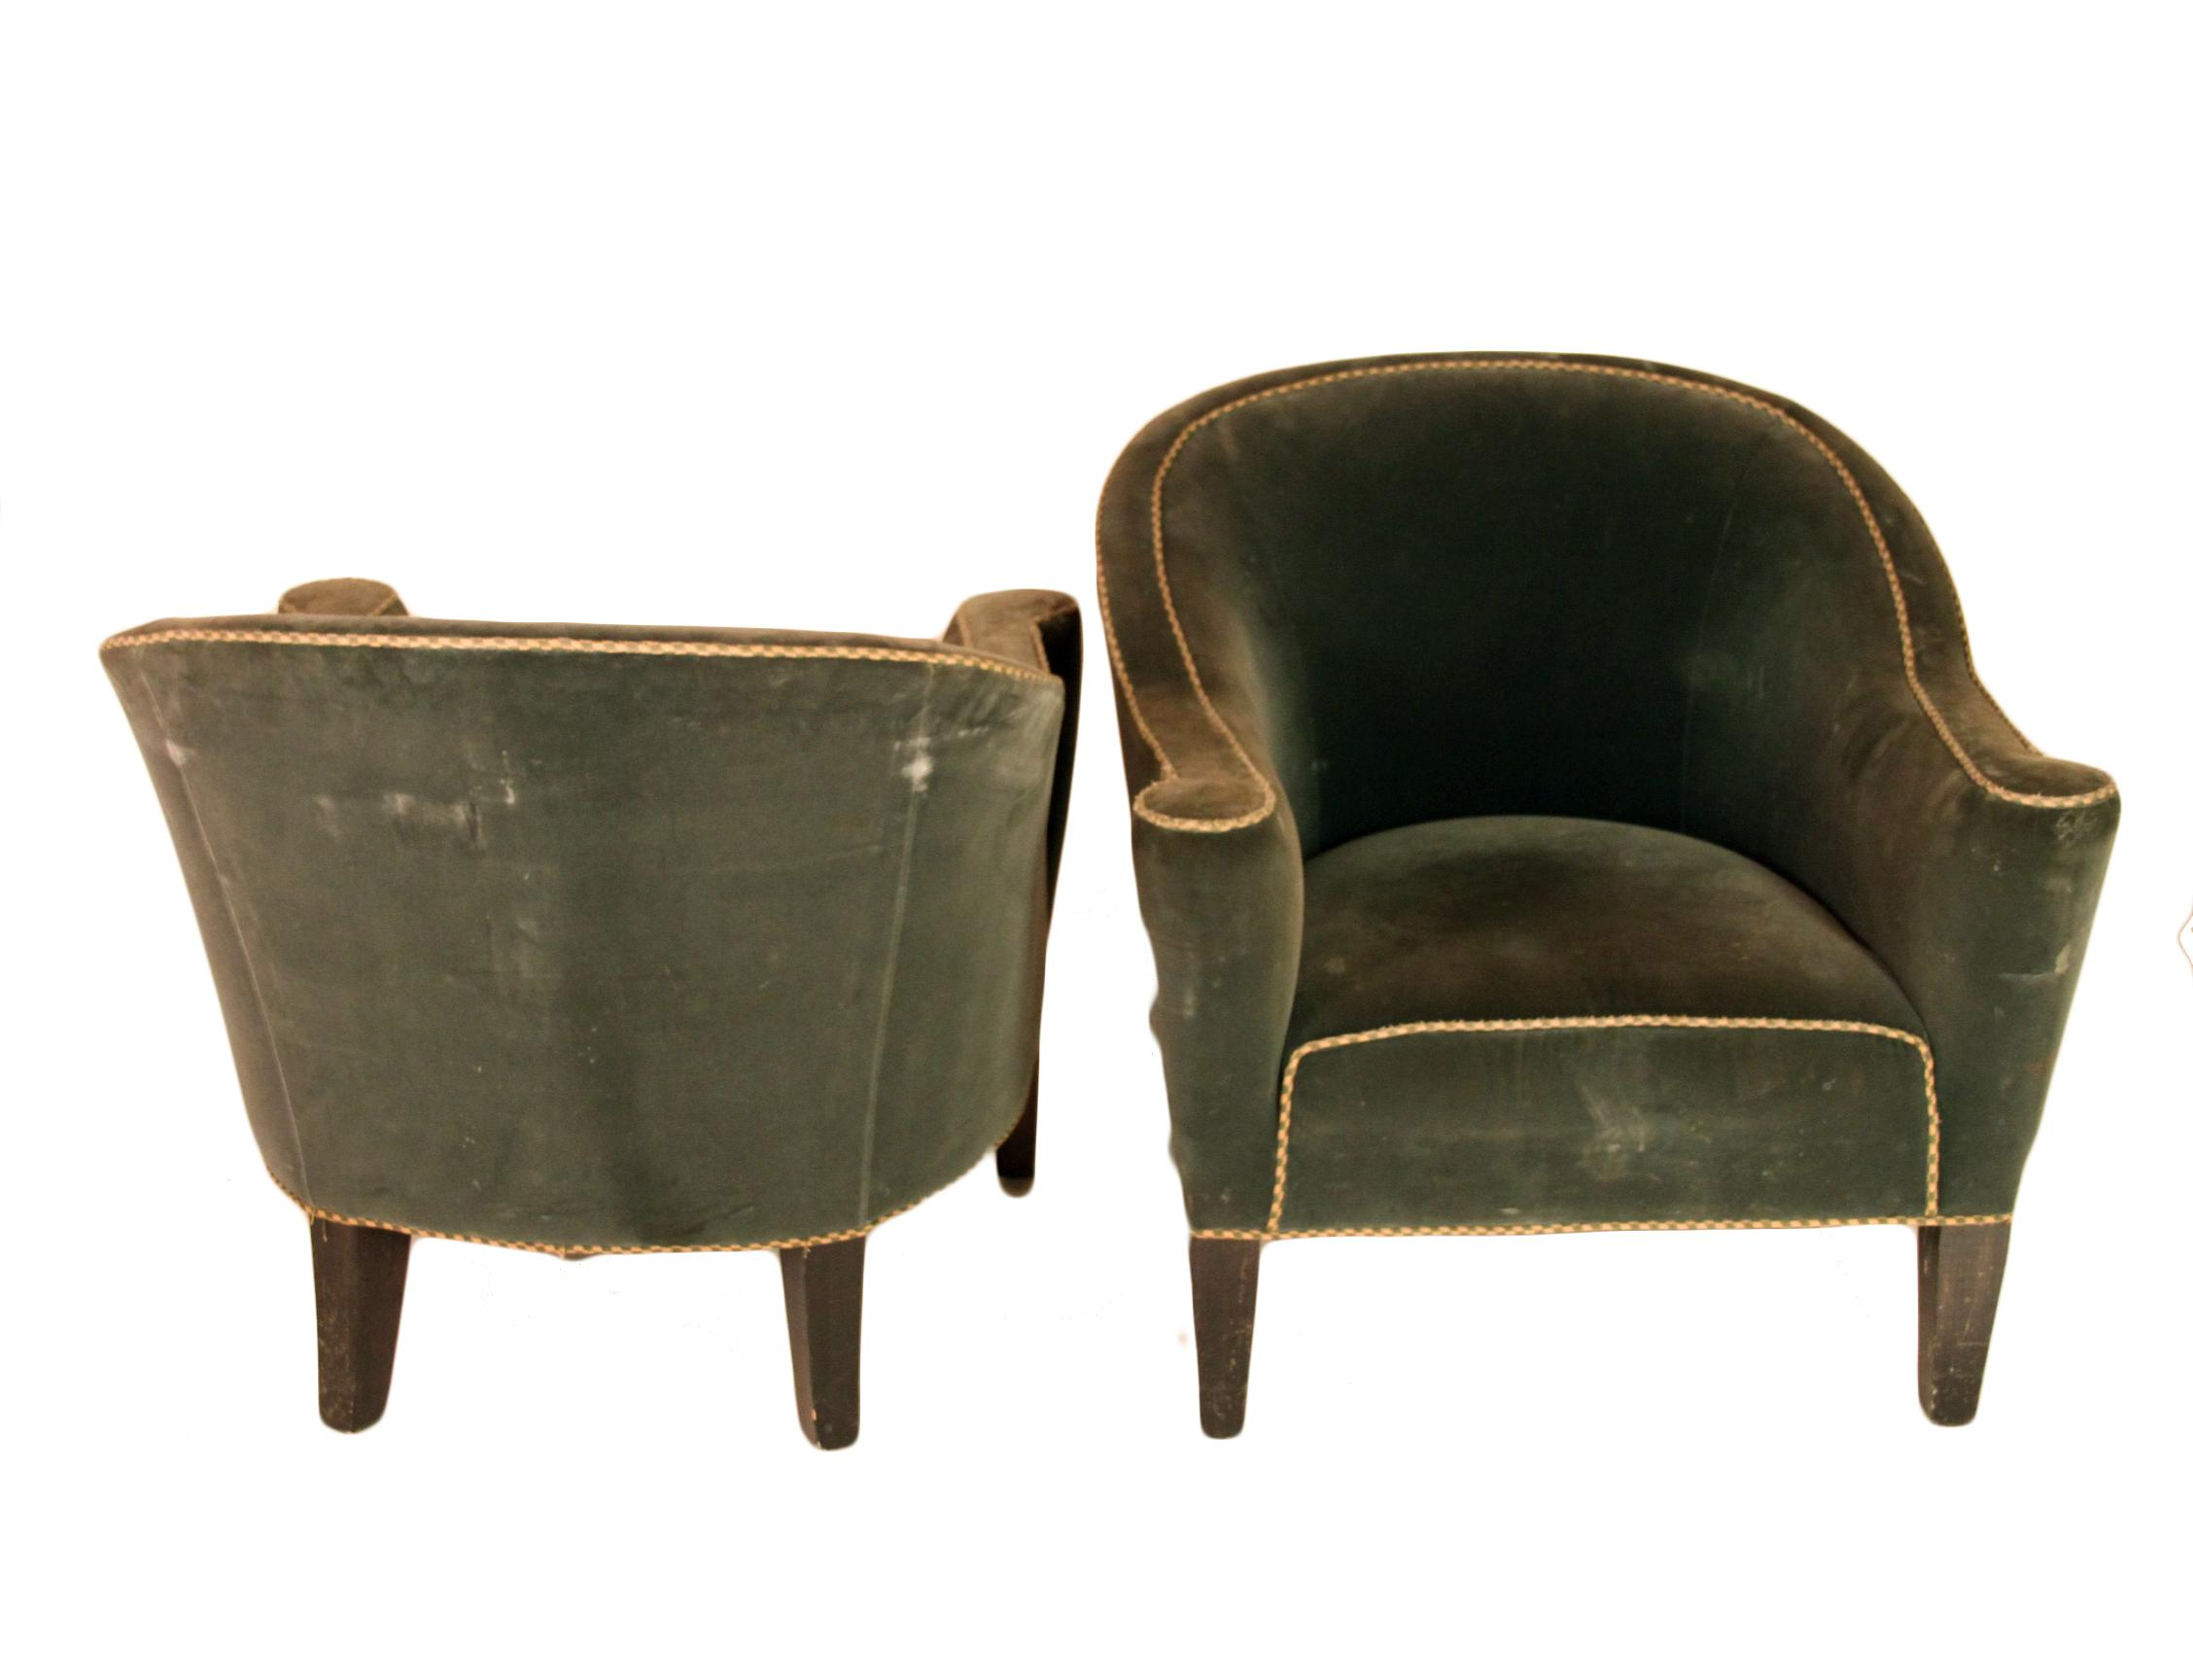 Amazing Art Deco Round Back Club Chairs   A Pair   Image 5 Of 6